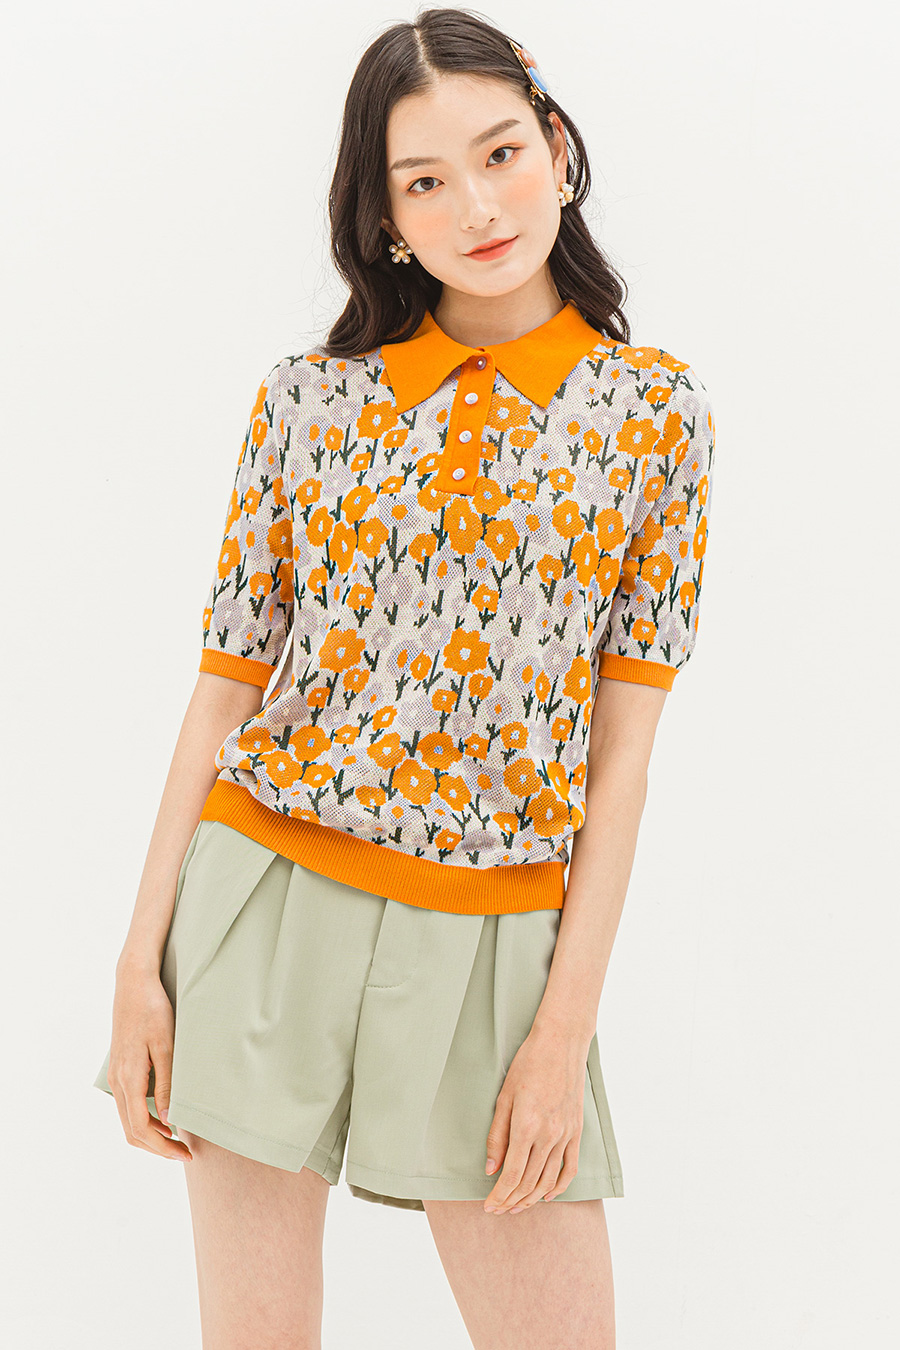 *BO* COLETTE TOP - PANSY